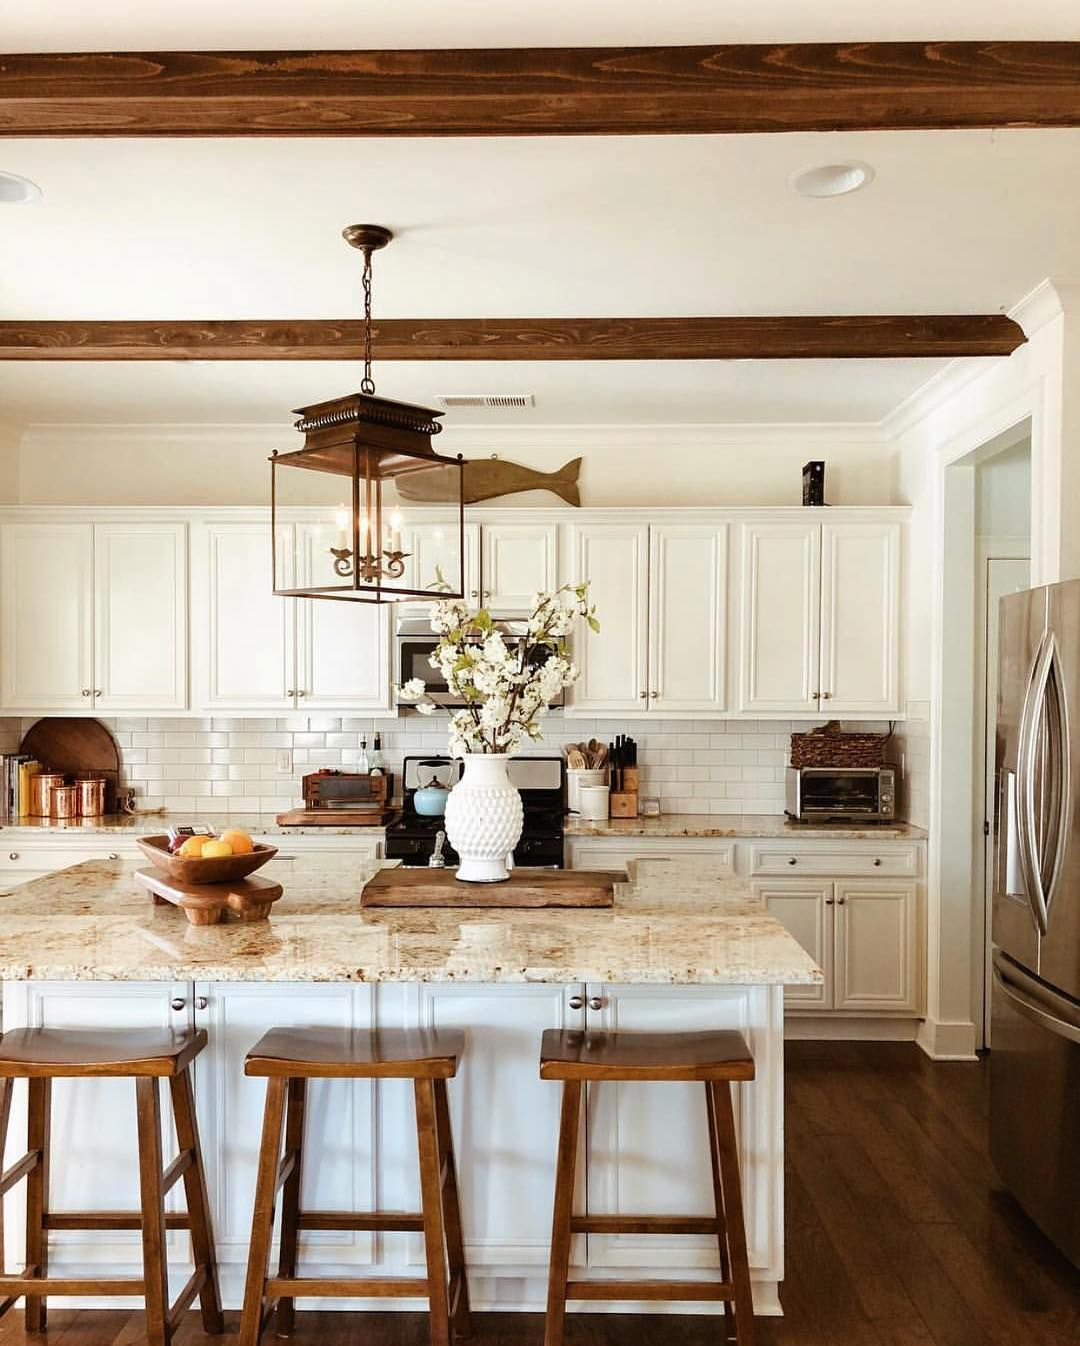 Farmhouse Kitchen Style How Inviting Is This Kitchen I Just Want To Bake In It The Clean Lines And W Kitchen Renovation Home Decor Kitchen Country Kitchen